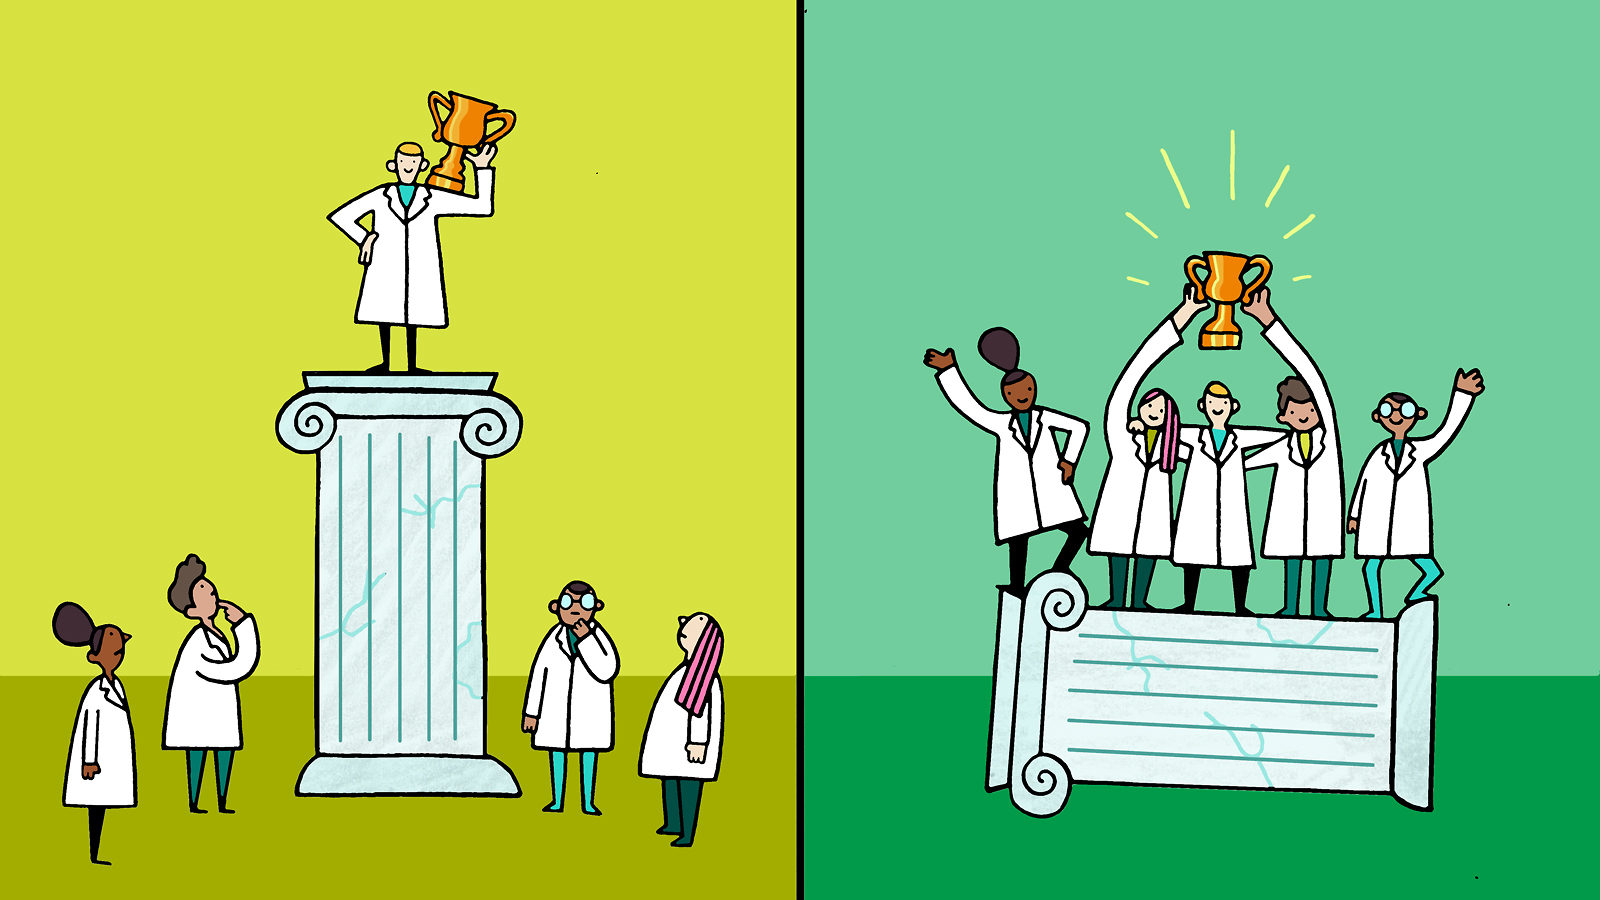 Illustration of scientists winning a prize